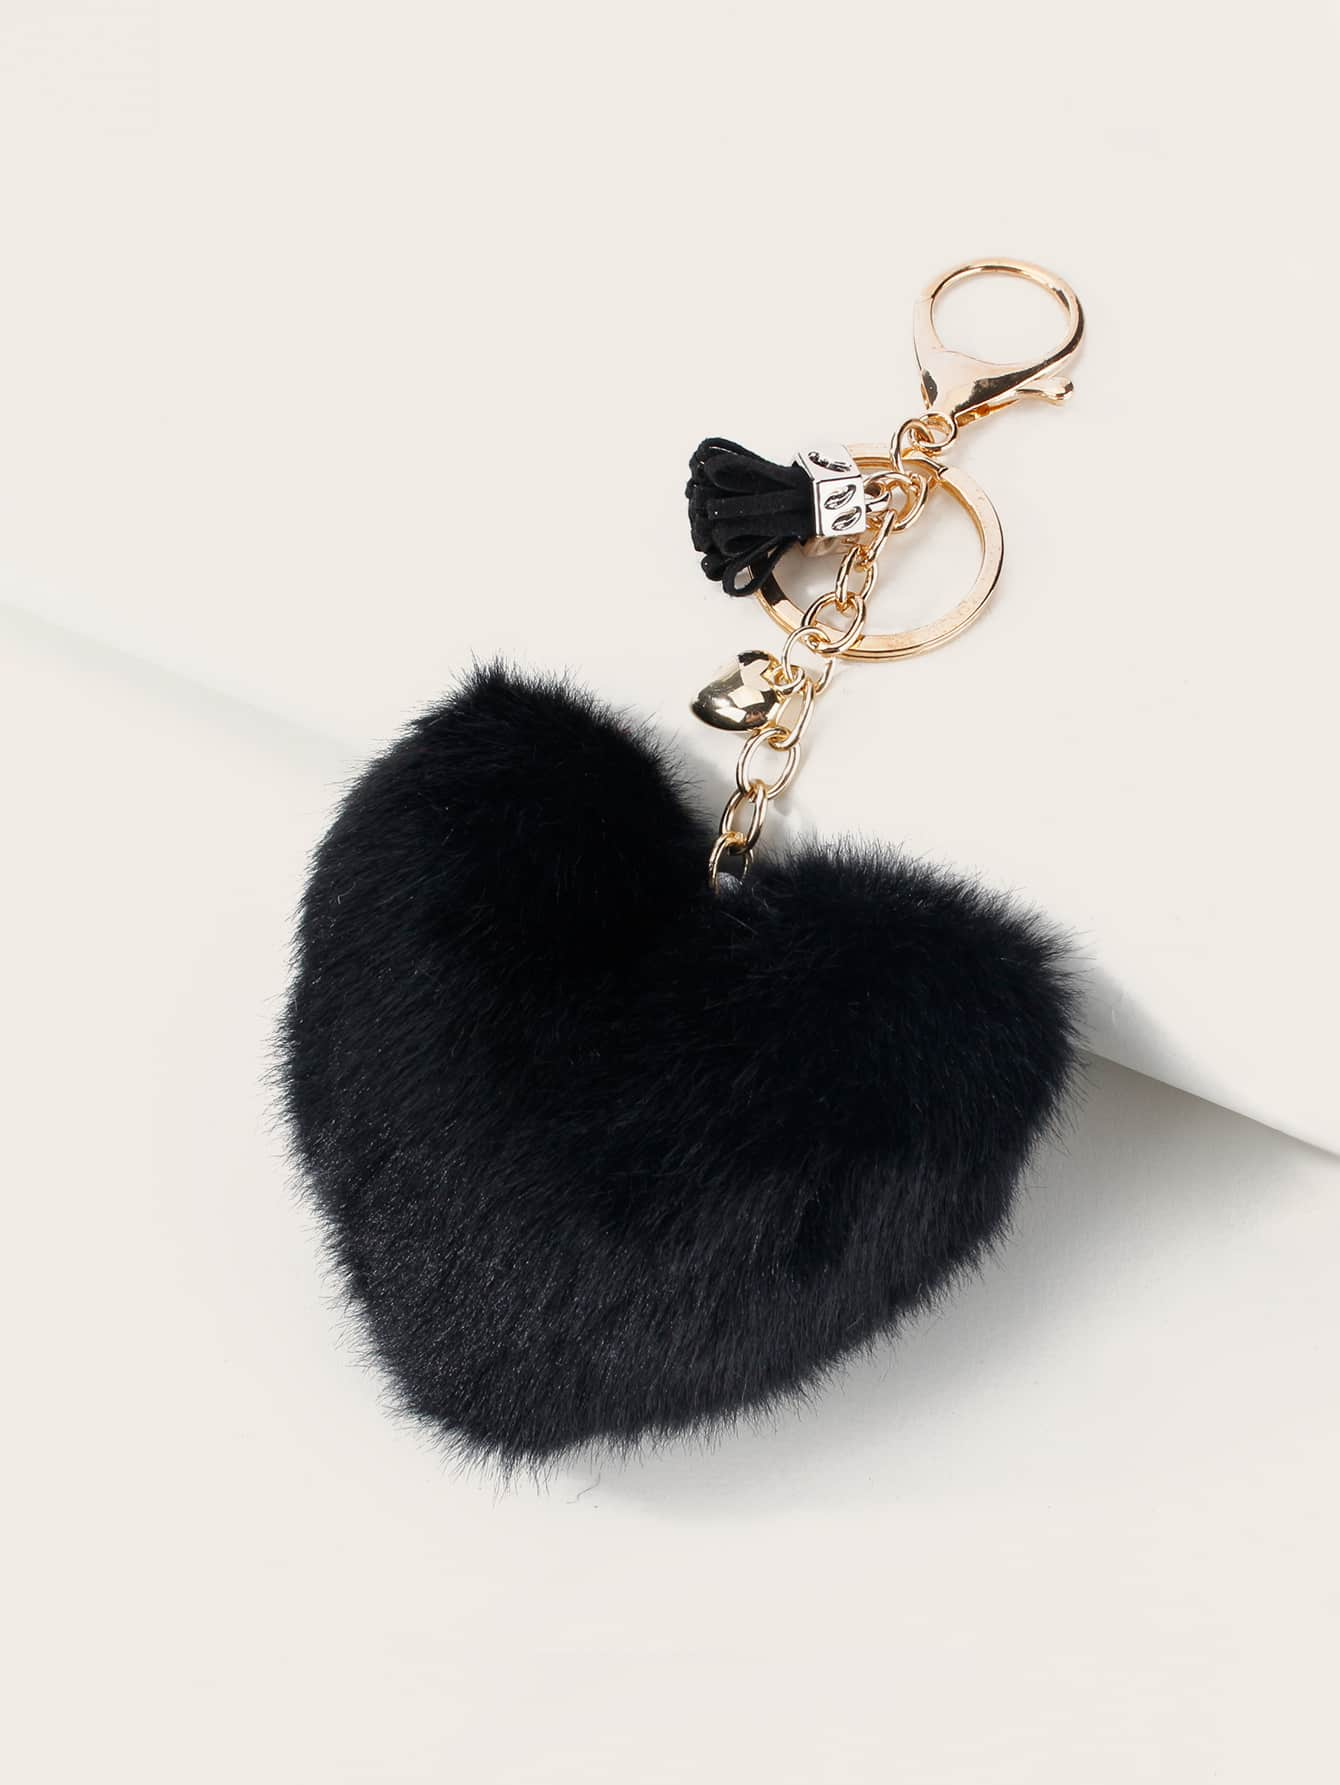 Fluffy Heart Design Bag Charm thumbnail